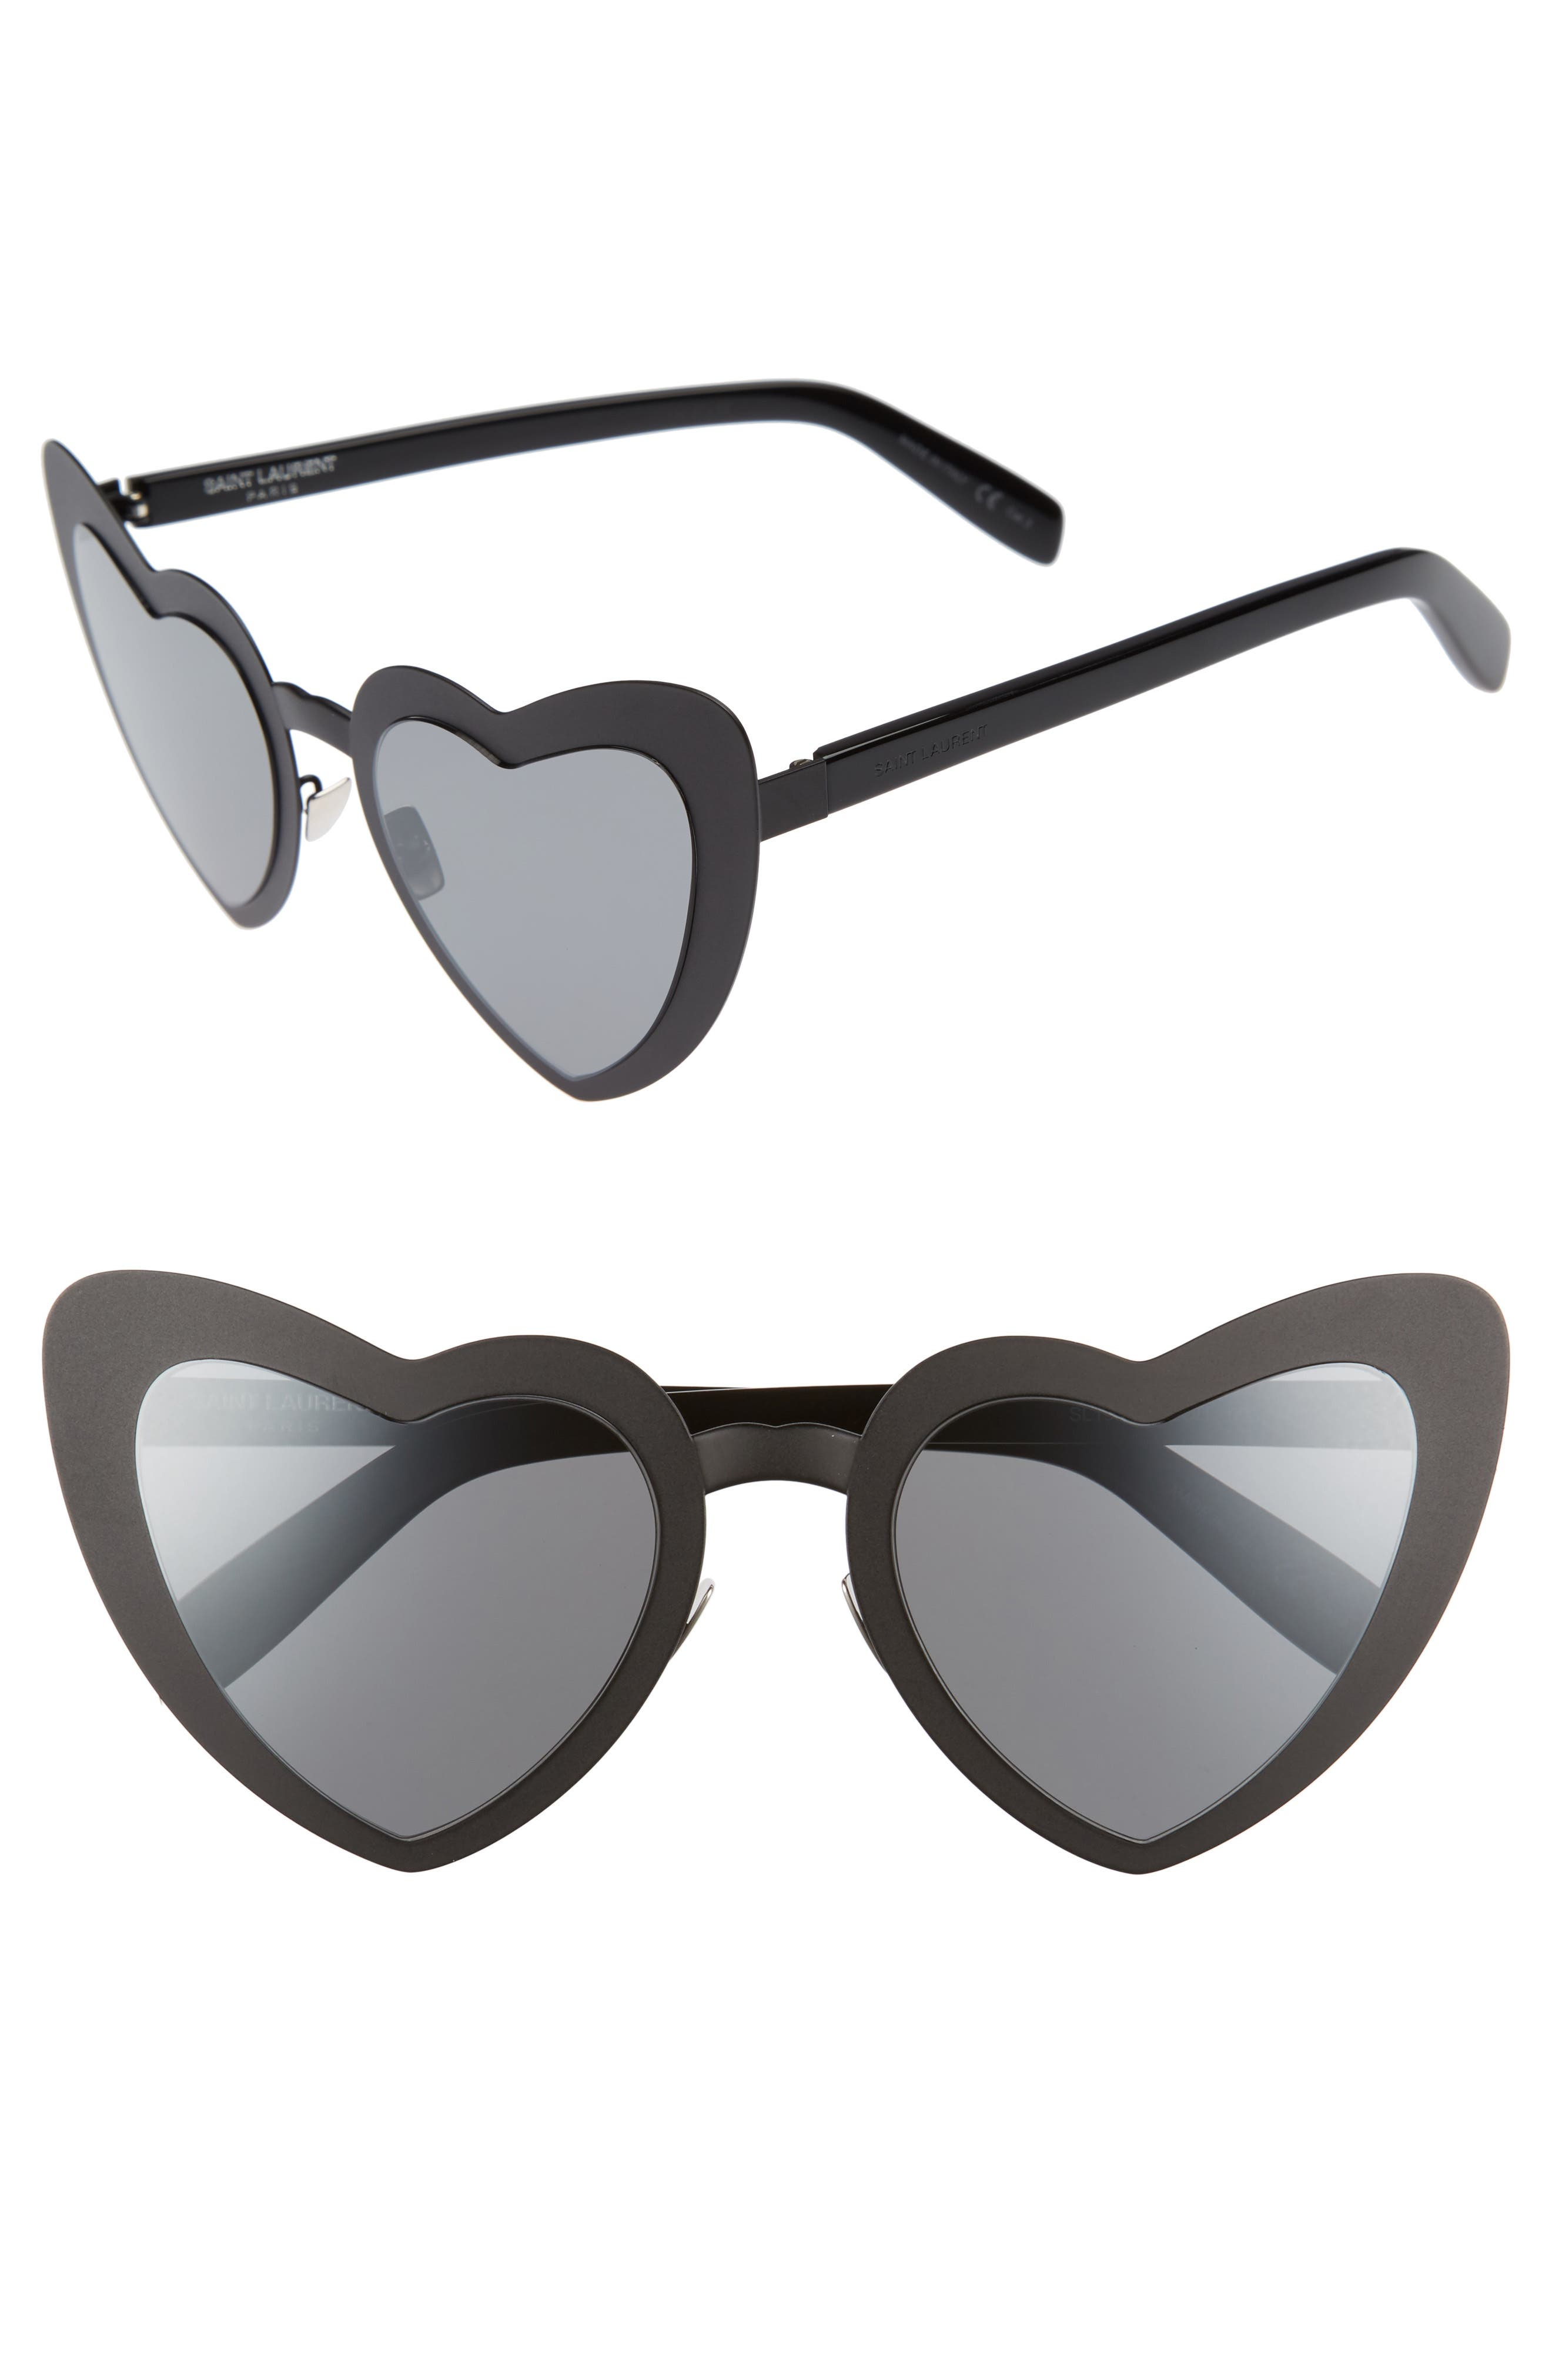 Loulou 55mm Heart Shaped Sunglasses,                         Main,                         color, Black